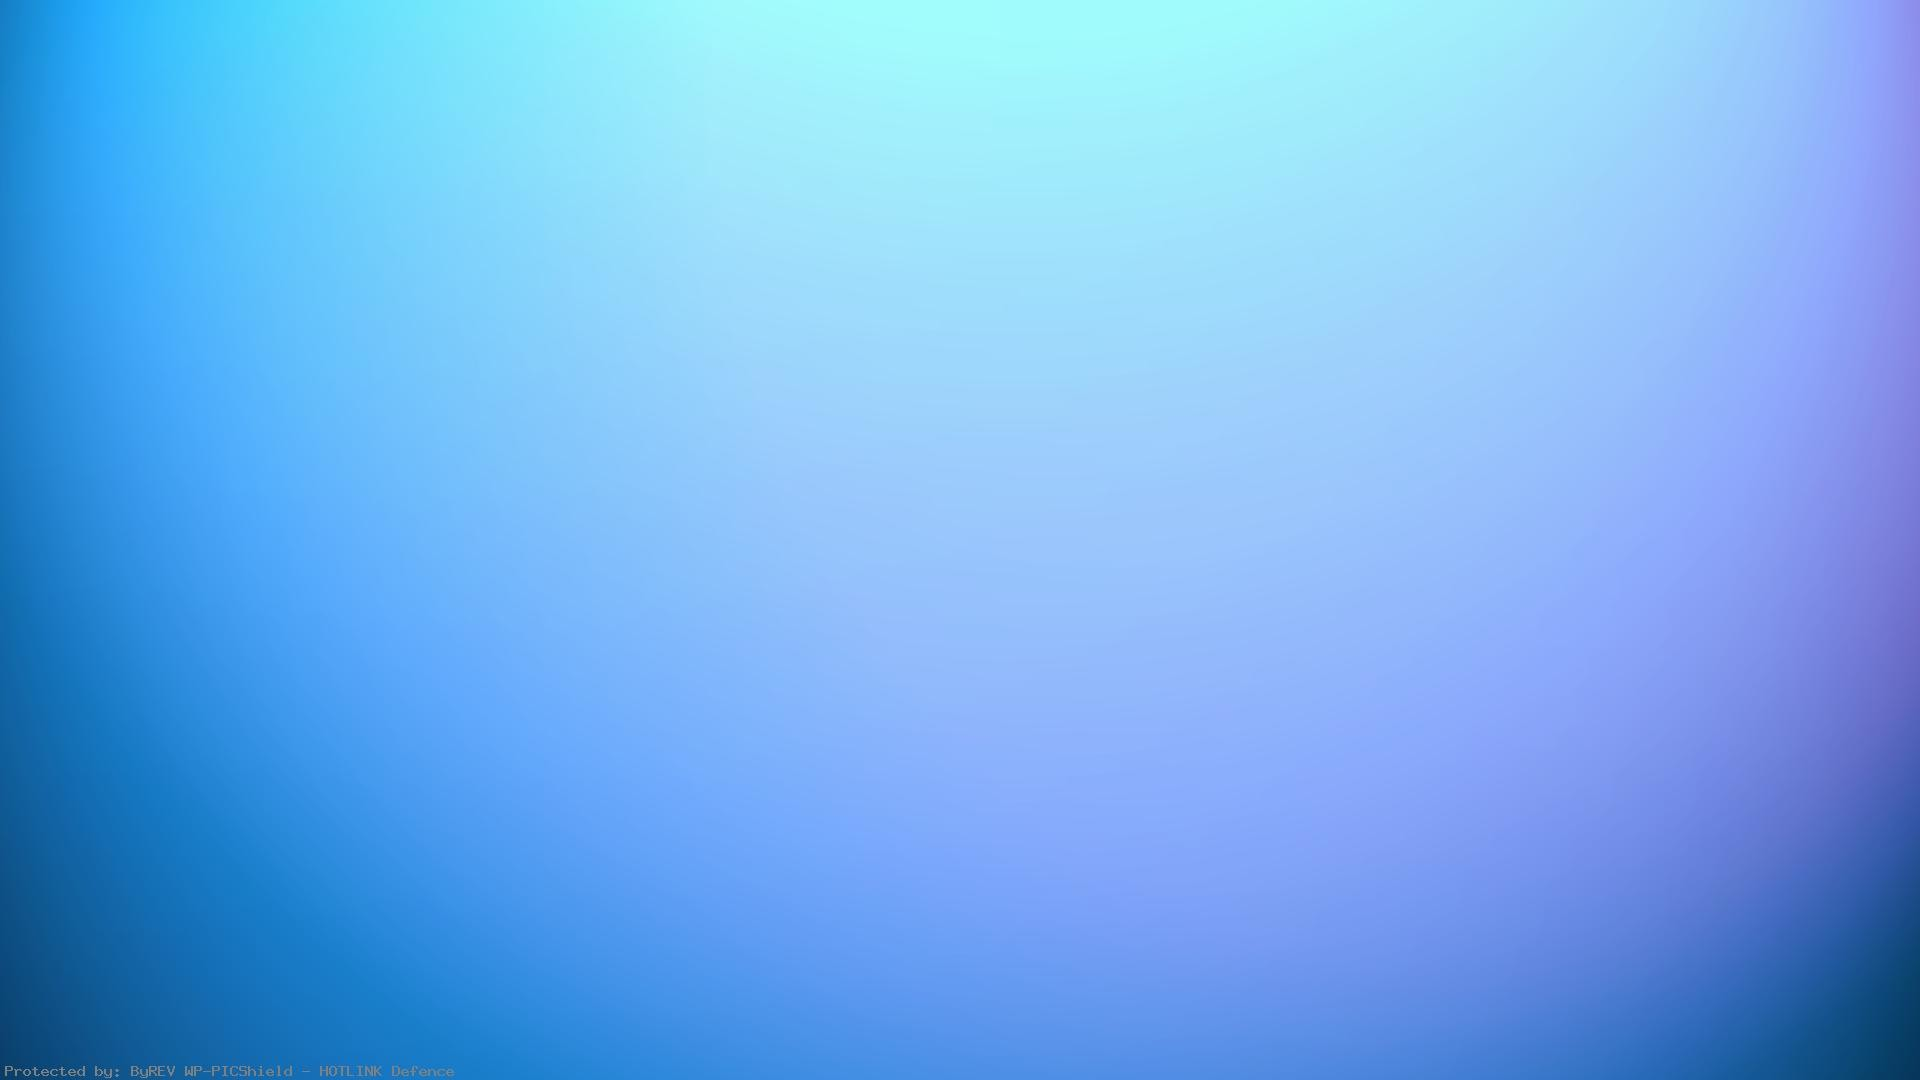 1920x1080 blue-white-gradient-Blue-gradient-HD--wallpaper-